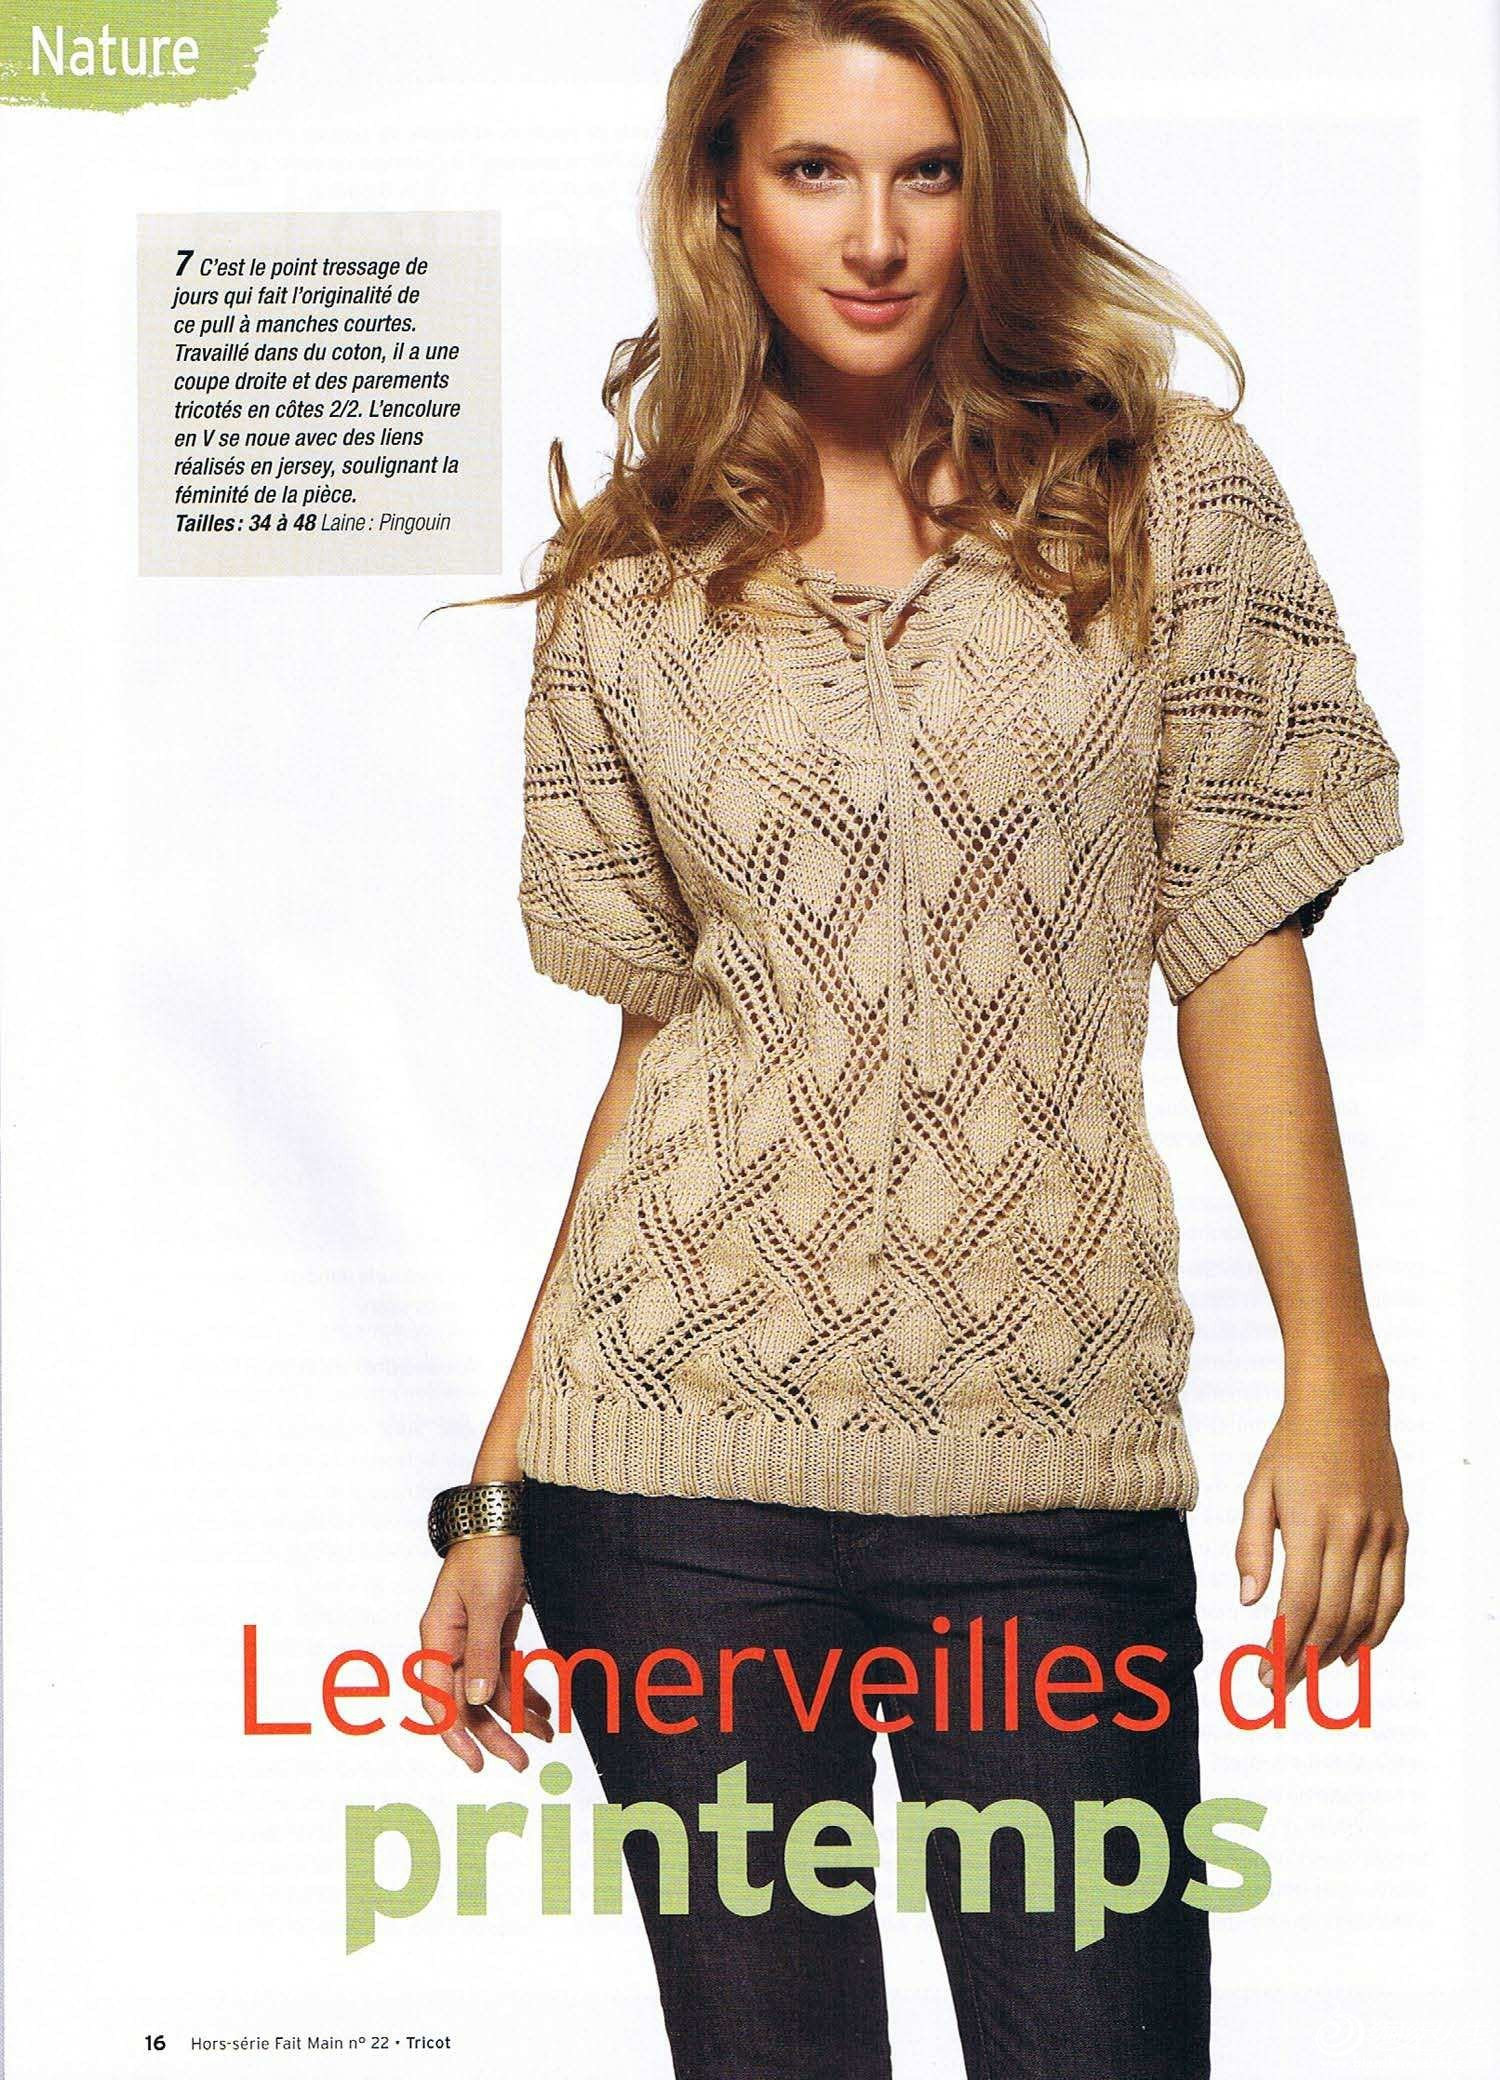 FAMILLE-FAITMAINTRICOT-HS22_page9_image1.jpg